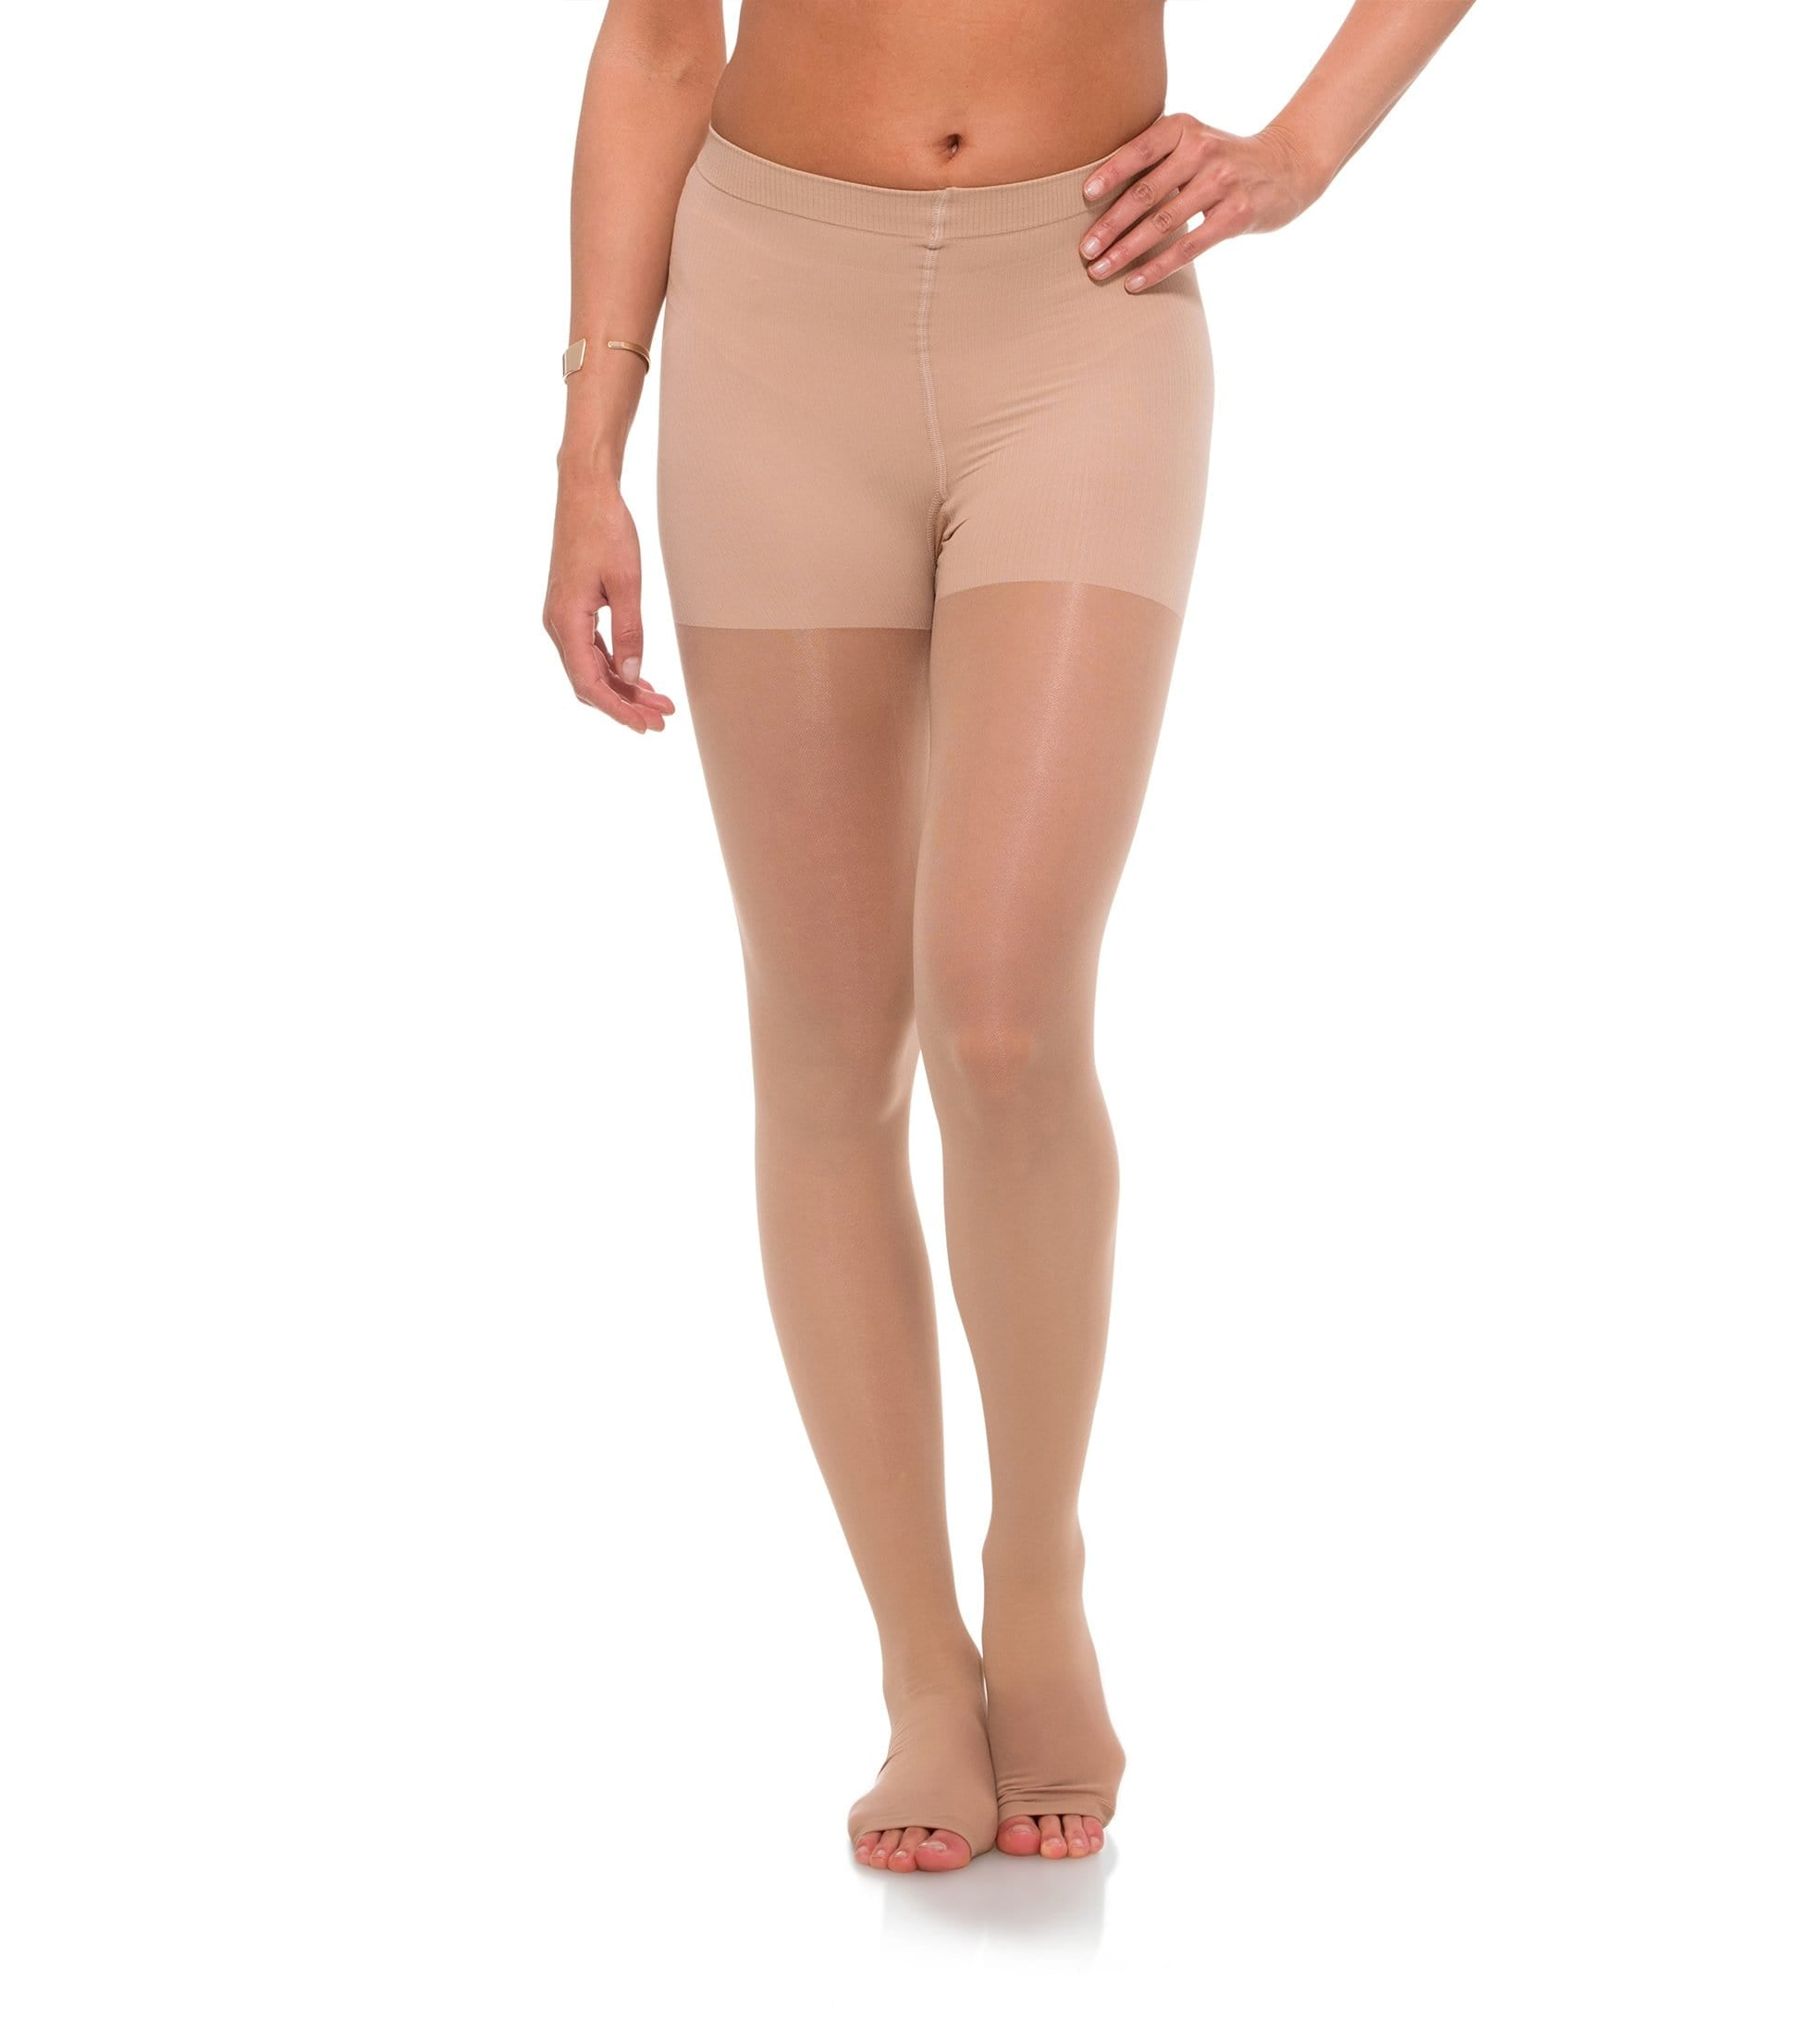 Womens Compression Pantyhose, 15-20mmHg Sheer Open Toe 145